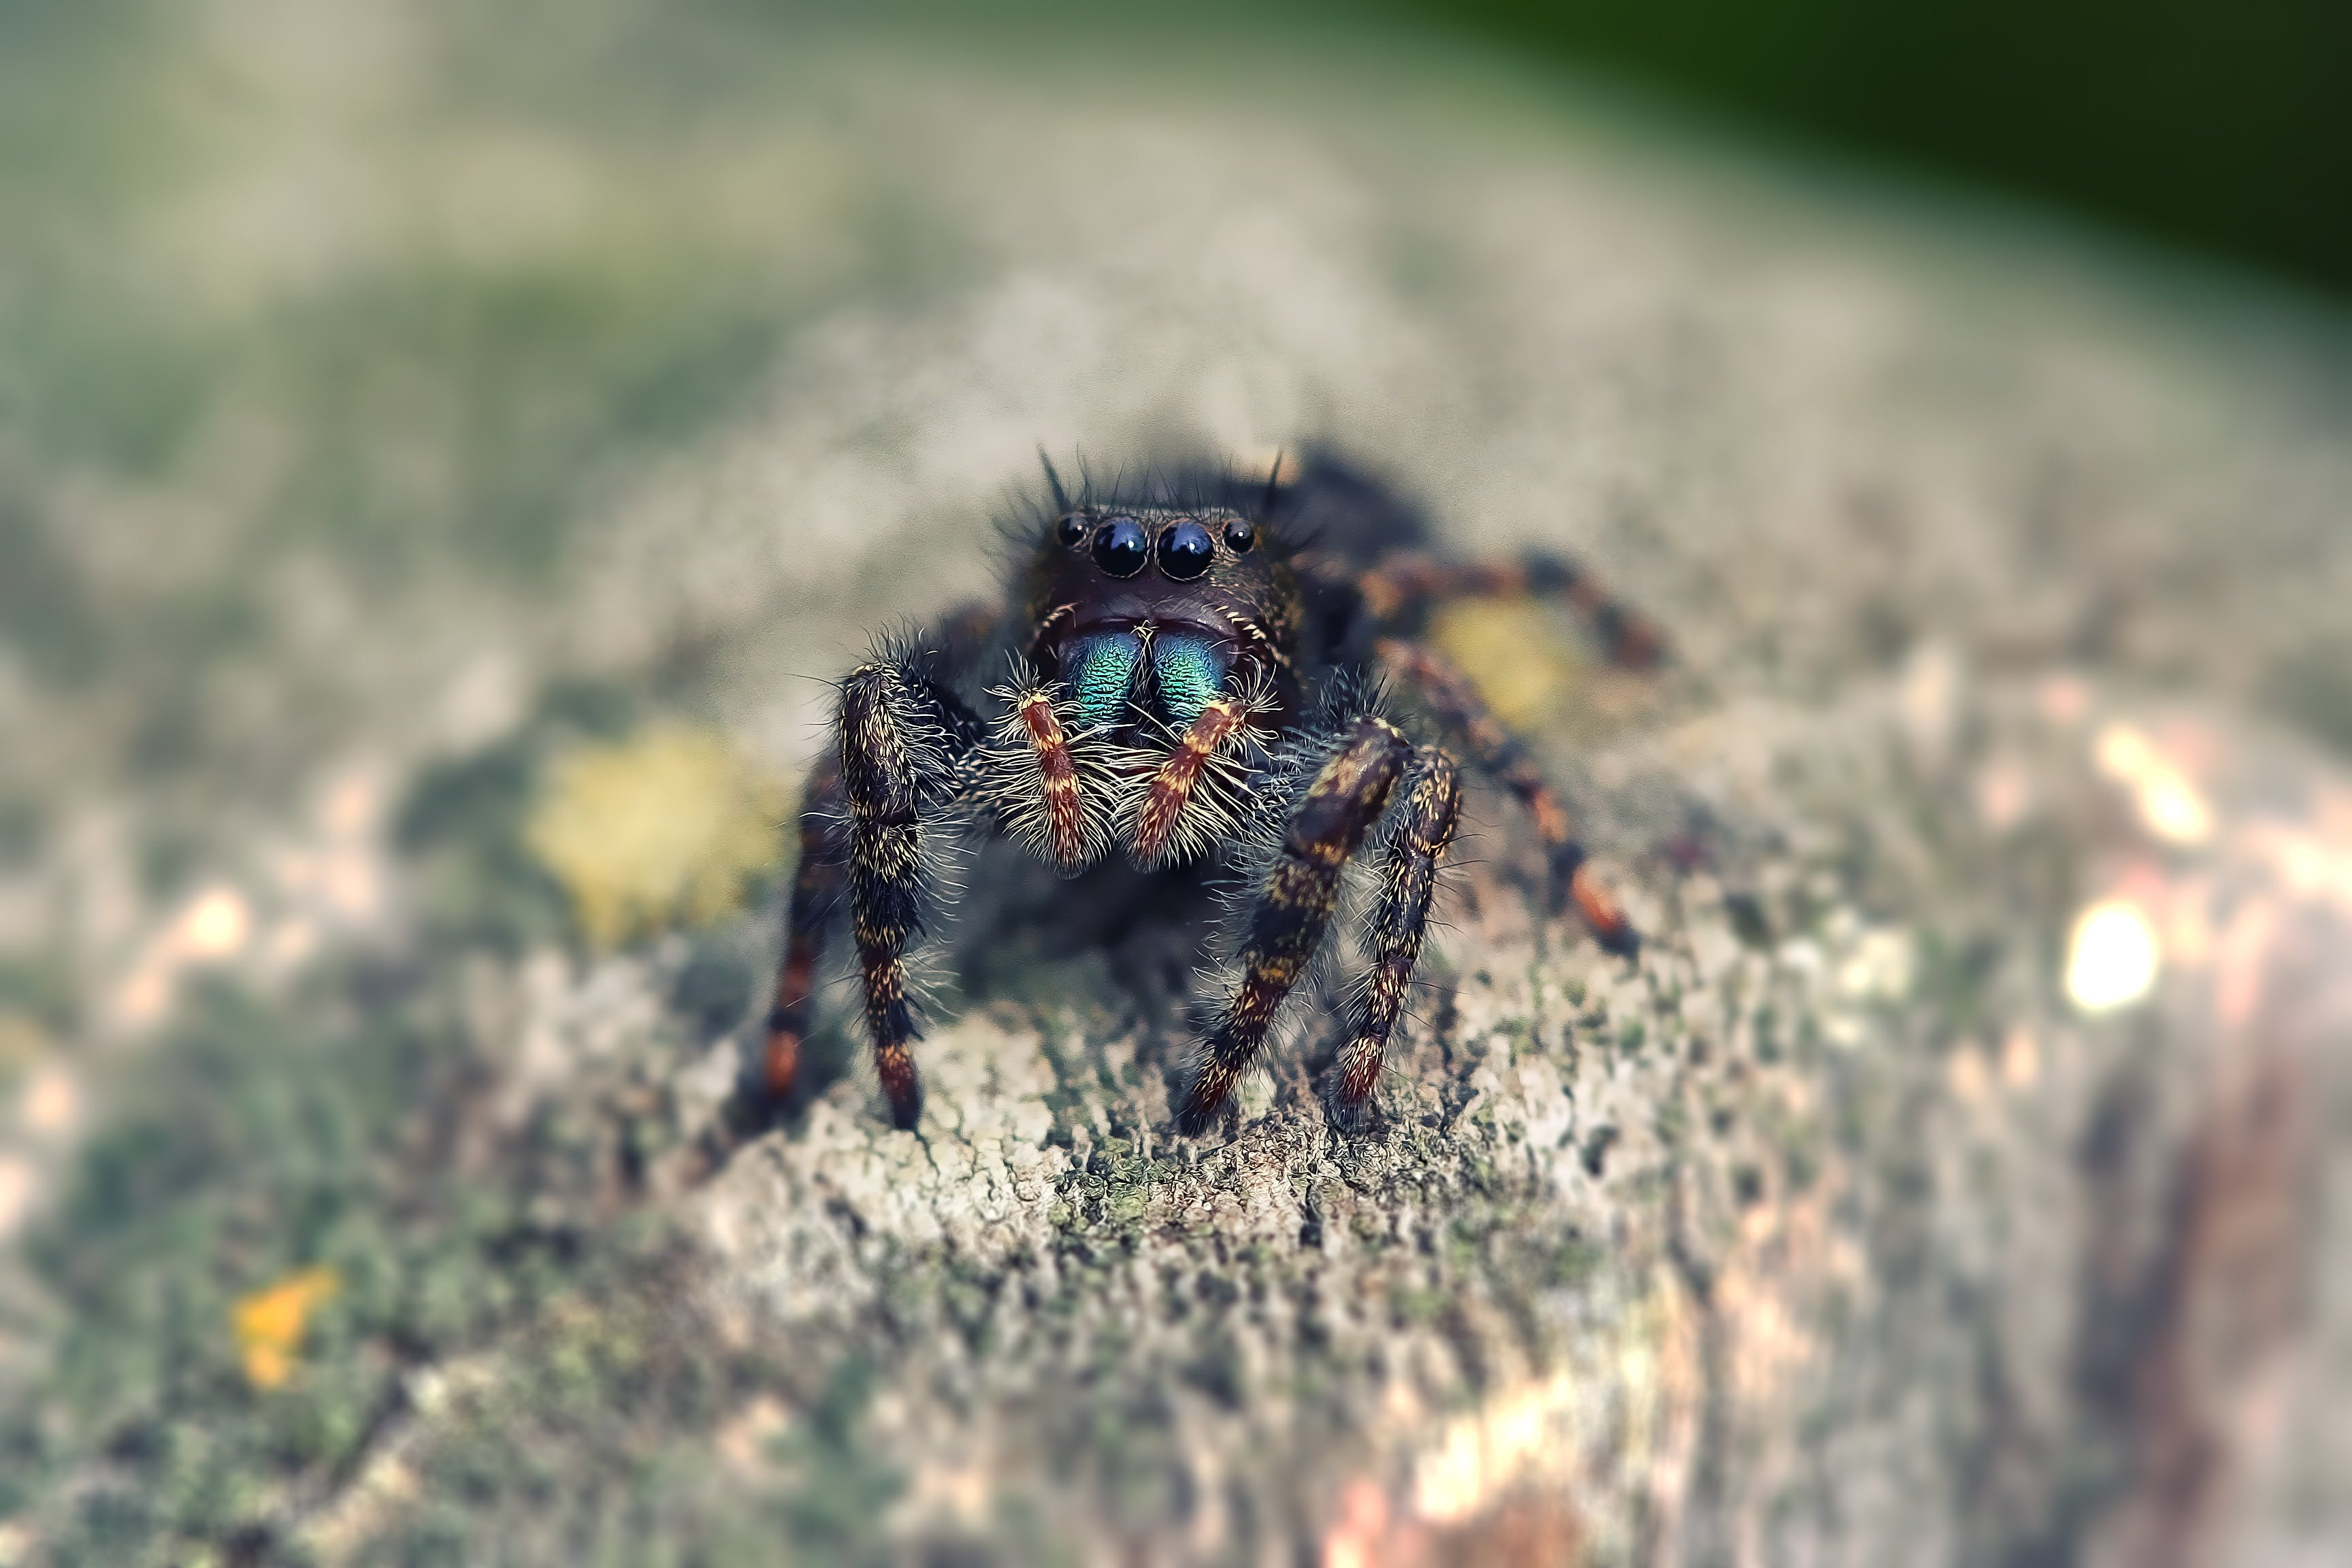 arachnid, blur, close-up